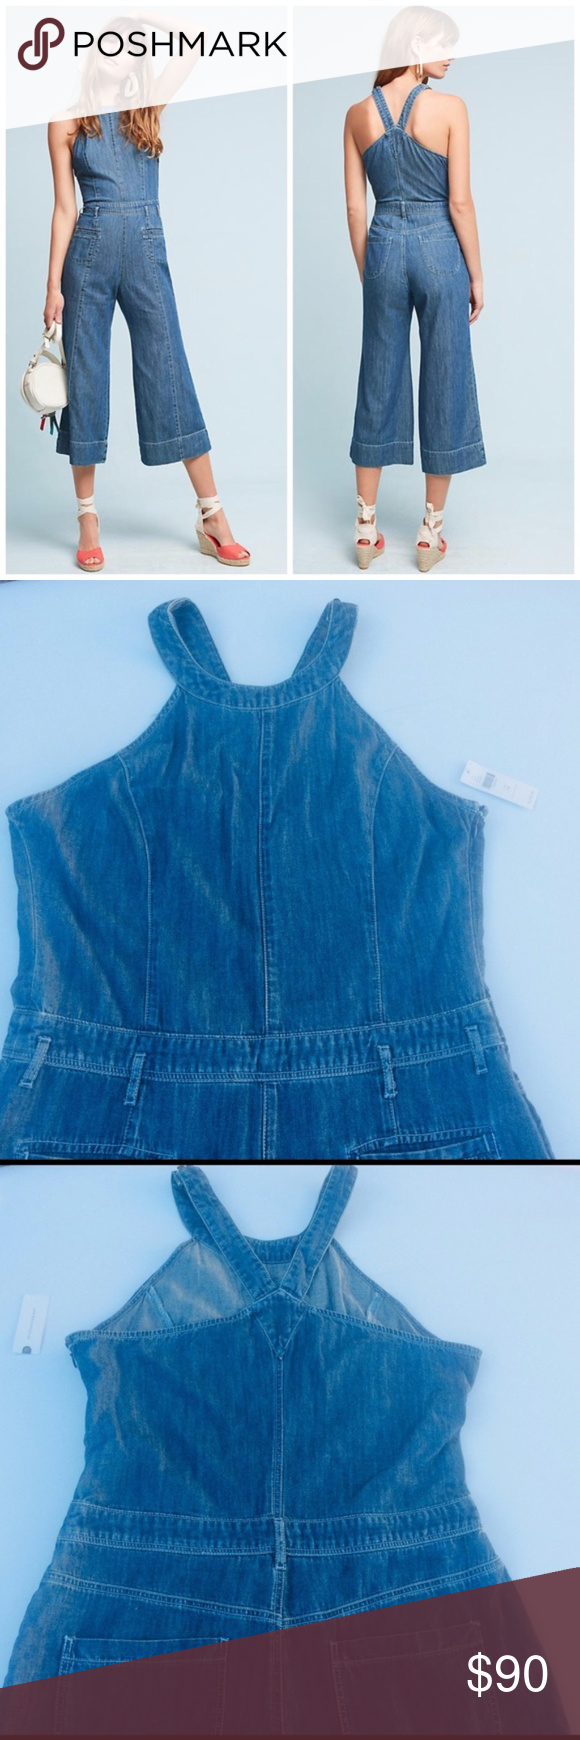 a71e0aa2afe NWT Pilcro for Anthropologie Femme Denim Jumpsuit Pilcro and the  letterpress for Anthropologie Femme Denim Jumpsuit